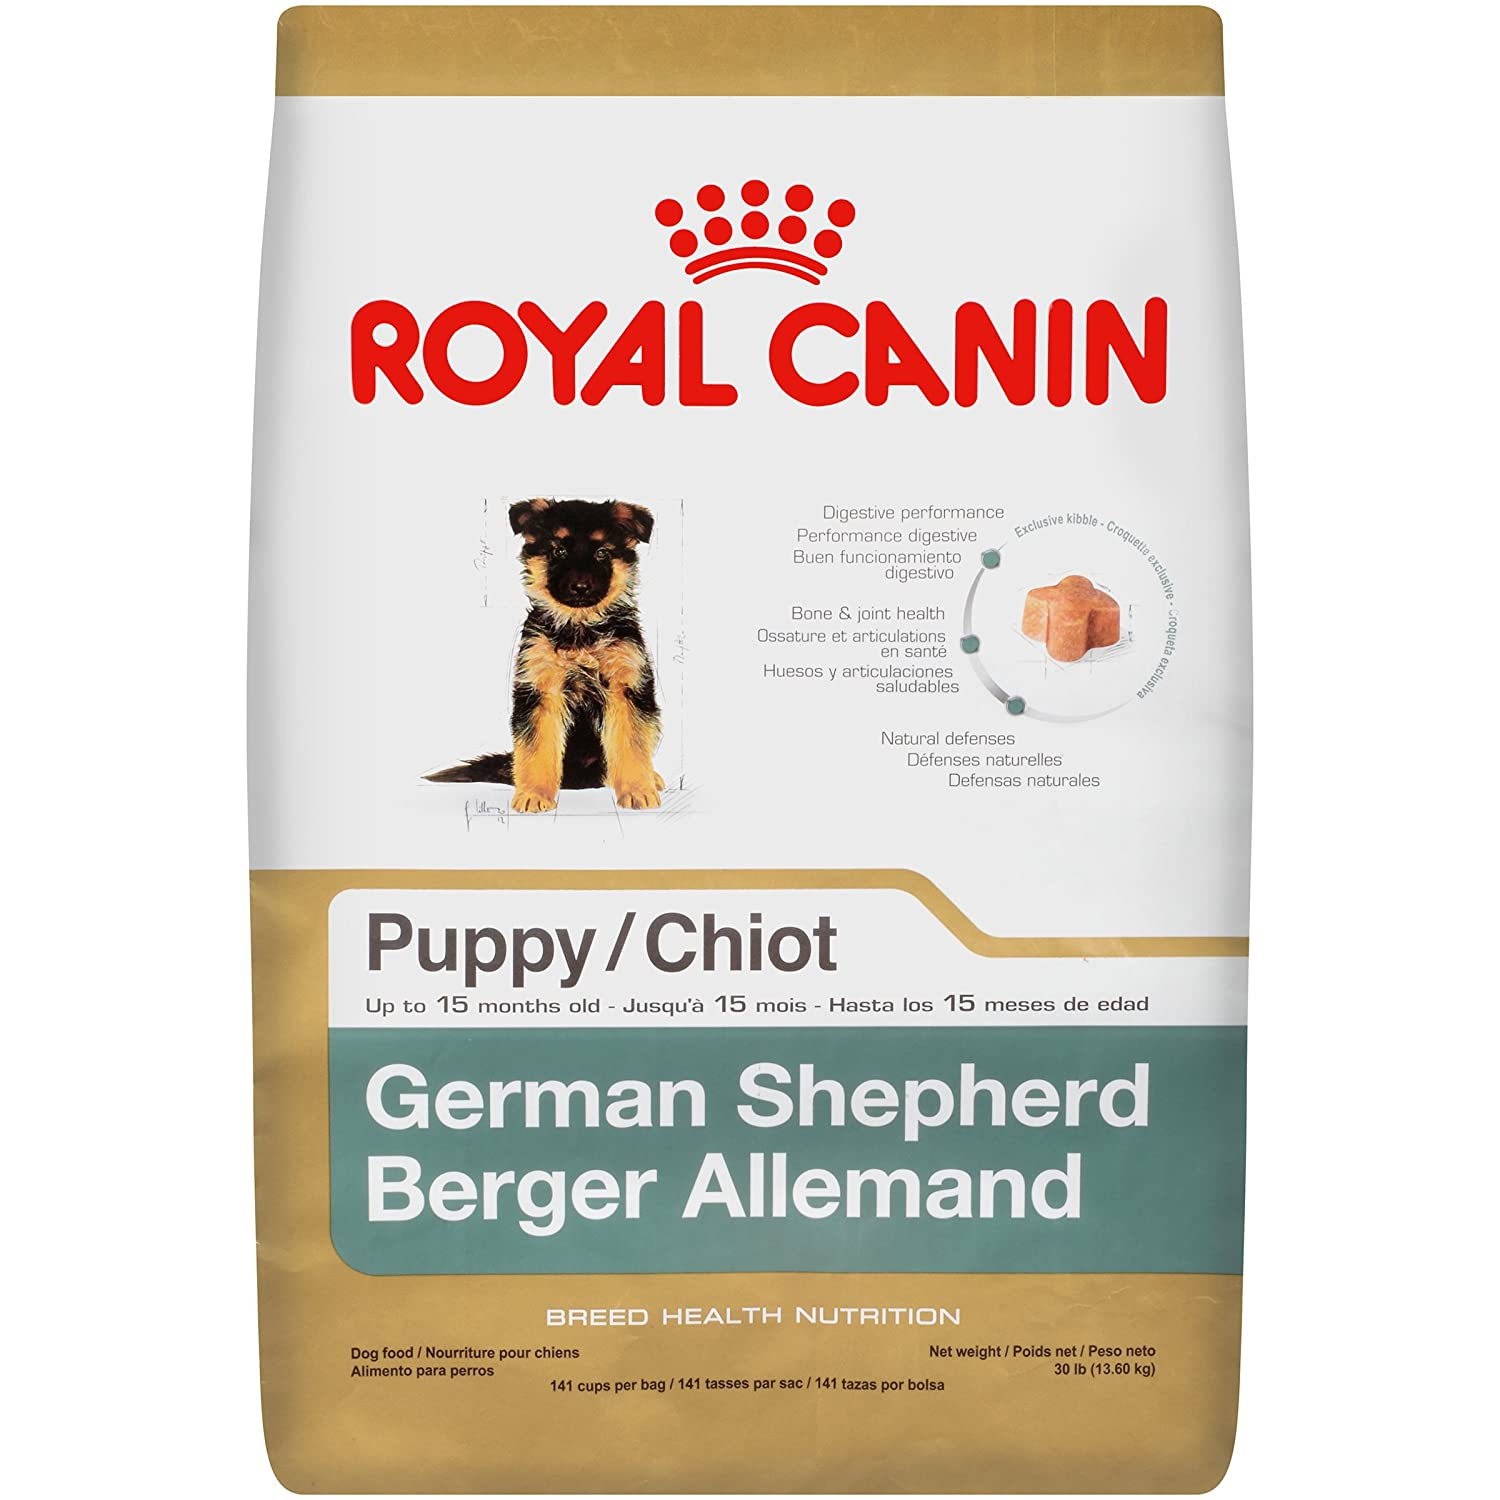 royal canin german shepherd puppy dry dog food 30 pound bag new free shippin ebay. Black Bedroom Furniture Sets. Home Design Ideas